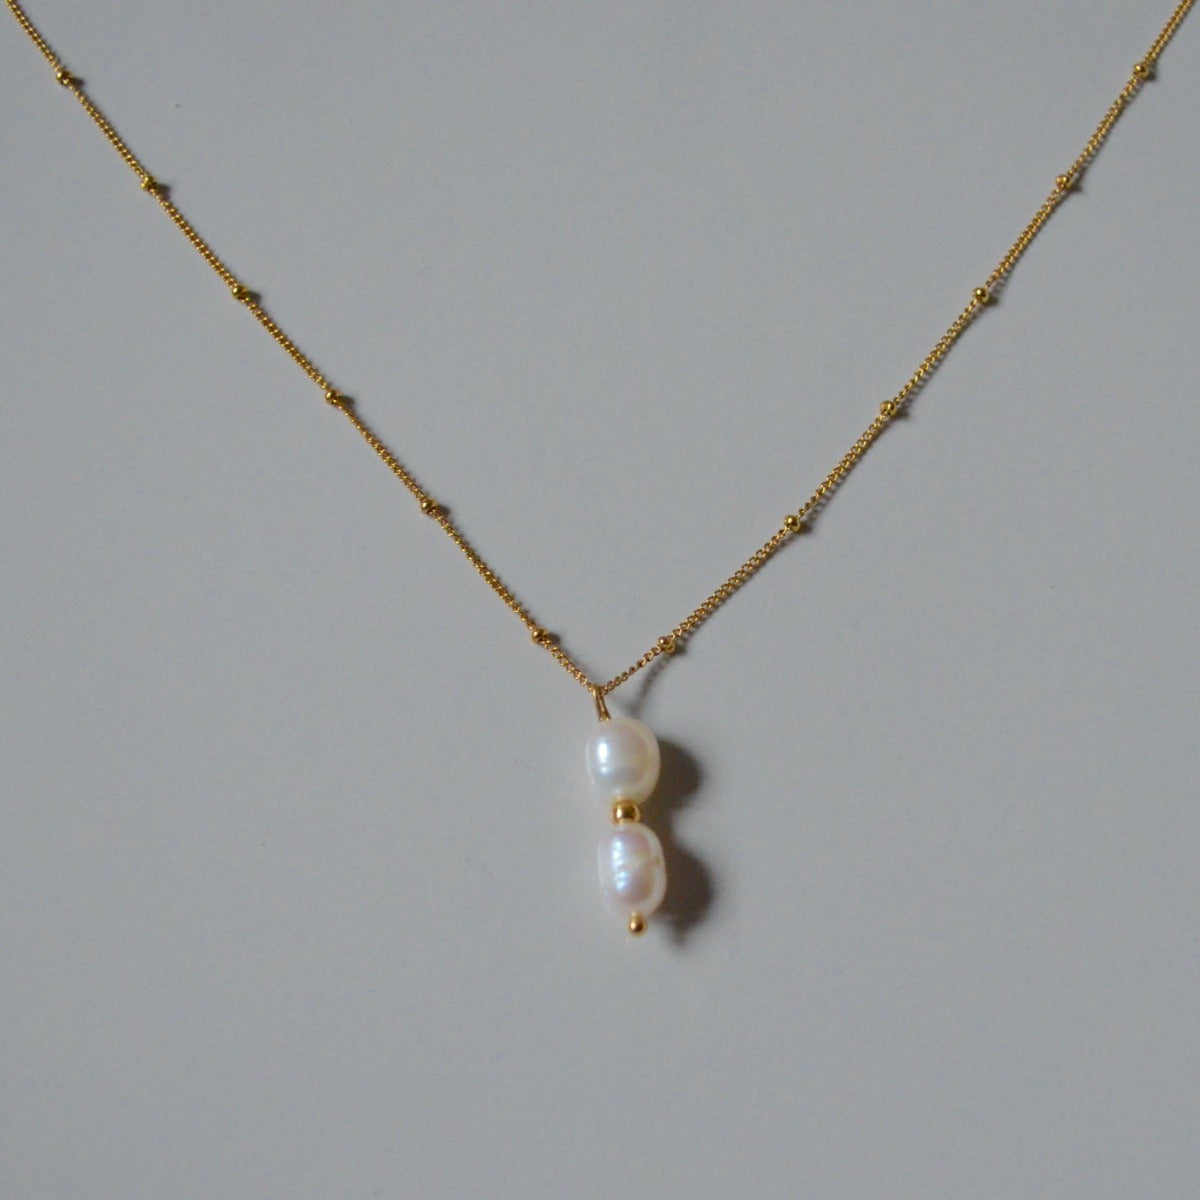 Syna 3mm Necklace 50cm Length